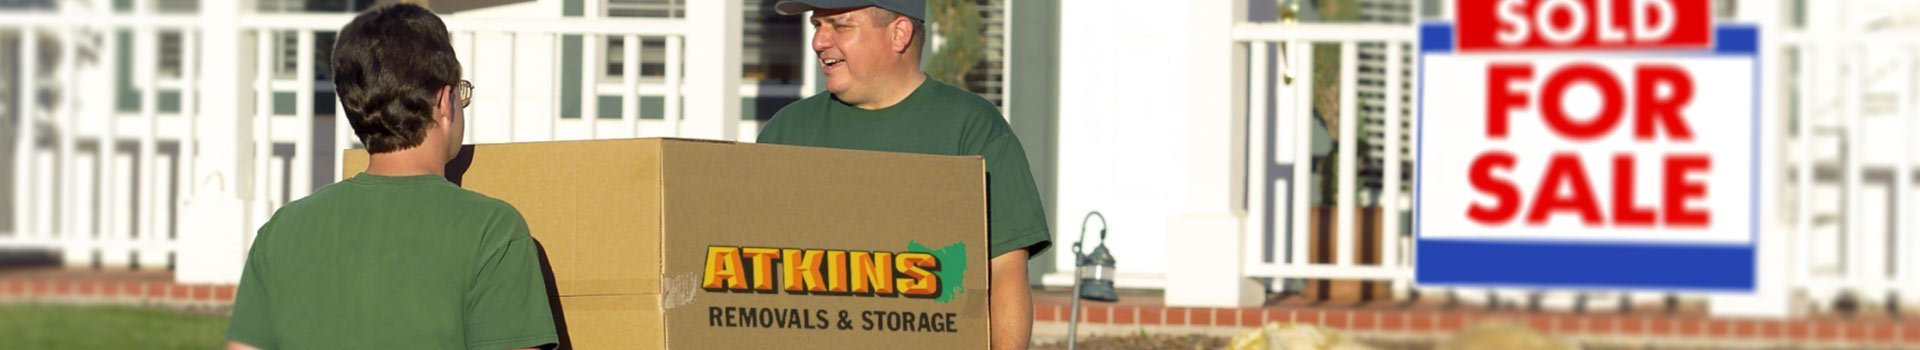 atkins removals and storage removalists